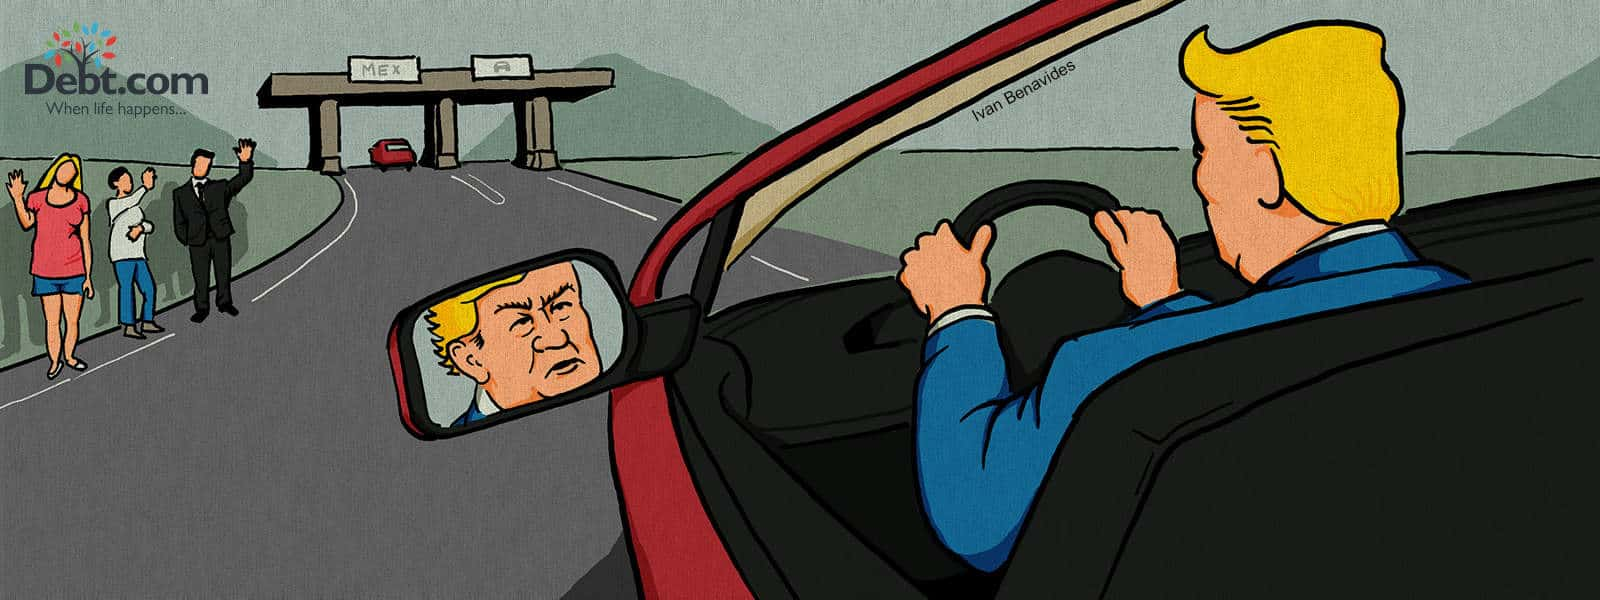 Donald Trump driving to Mexico for tax benefits while Americans wave goodbye (illustrated)